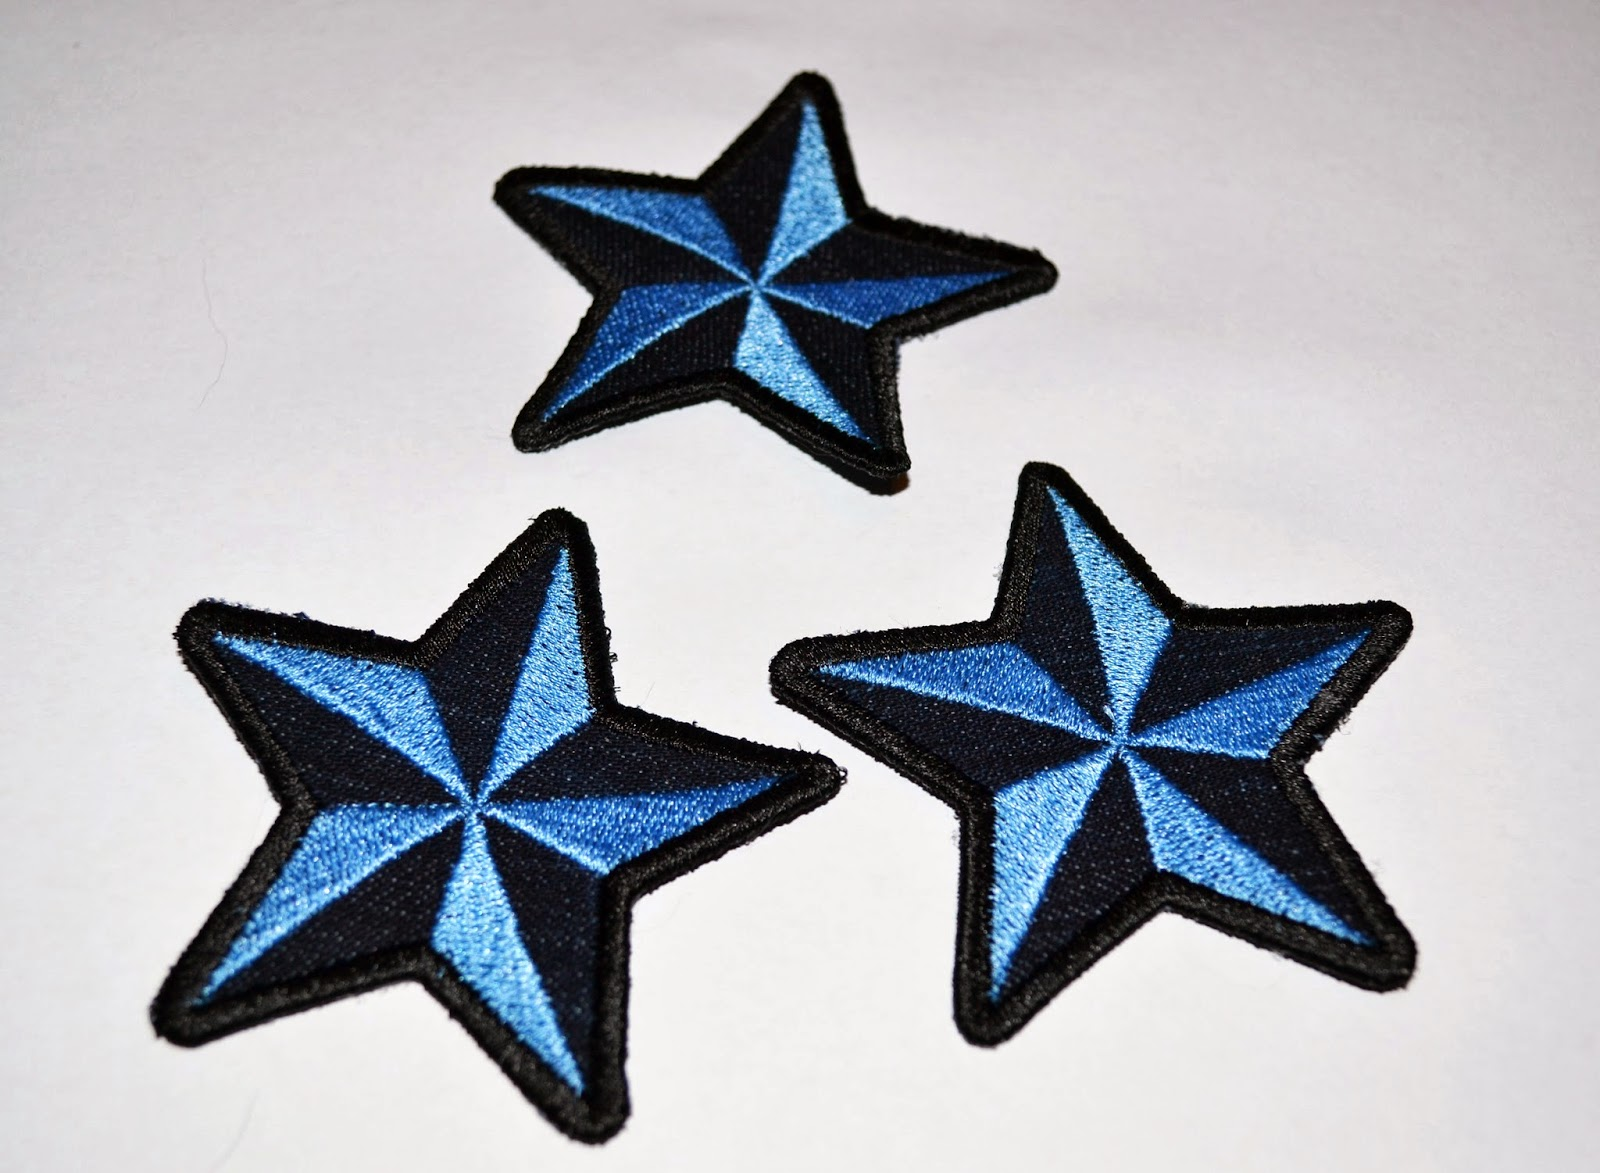 http://de.dawanda.com/product/60961887-Aufnaeher-Denim-Star-Stern-Nautical-Star